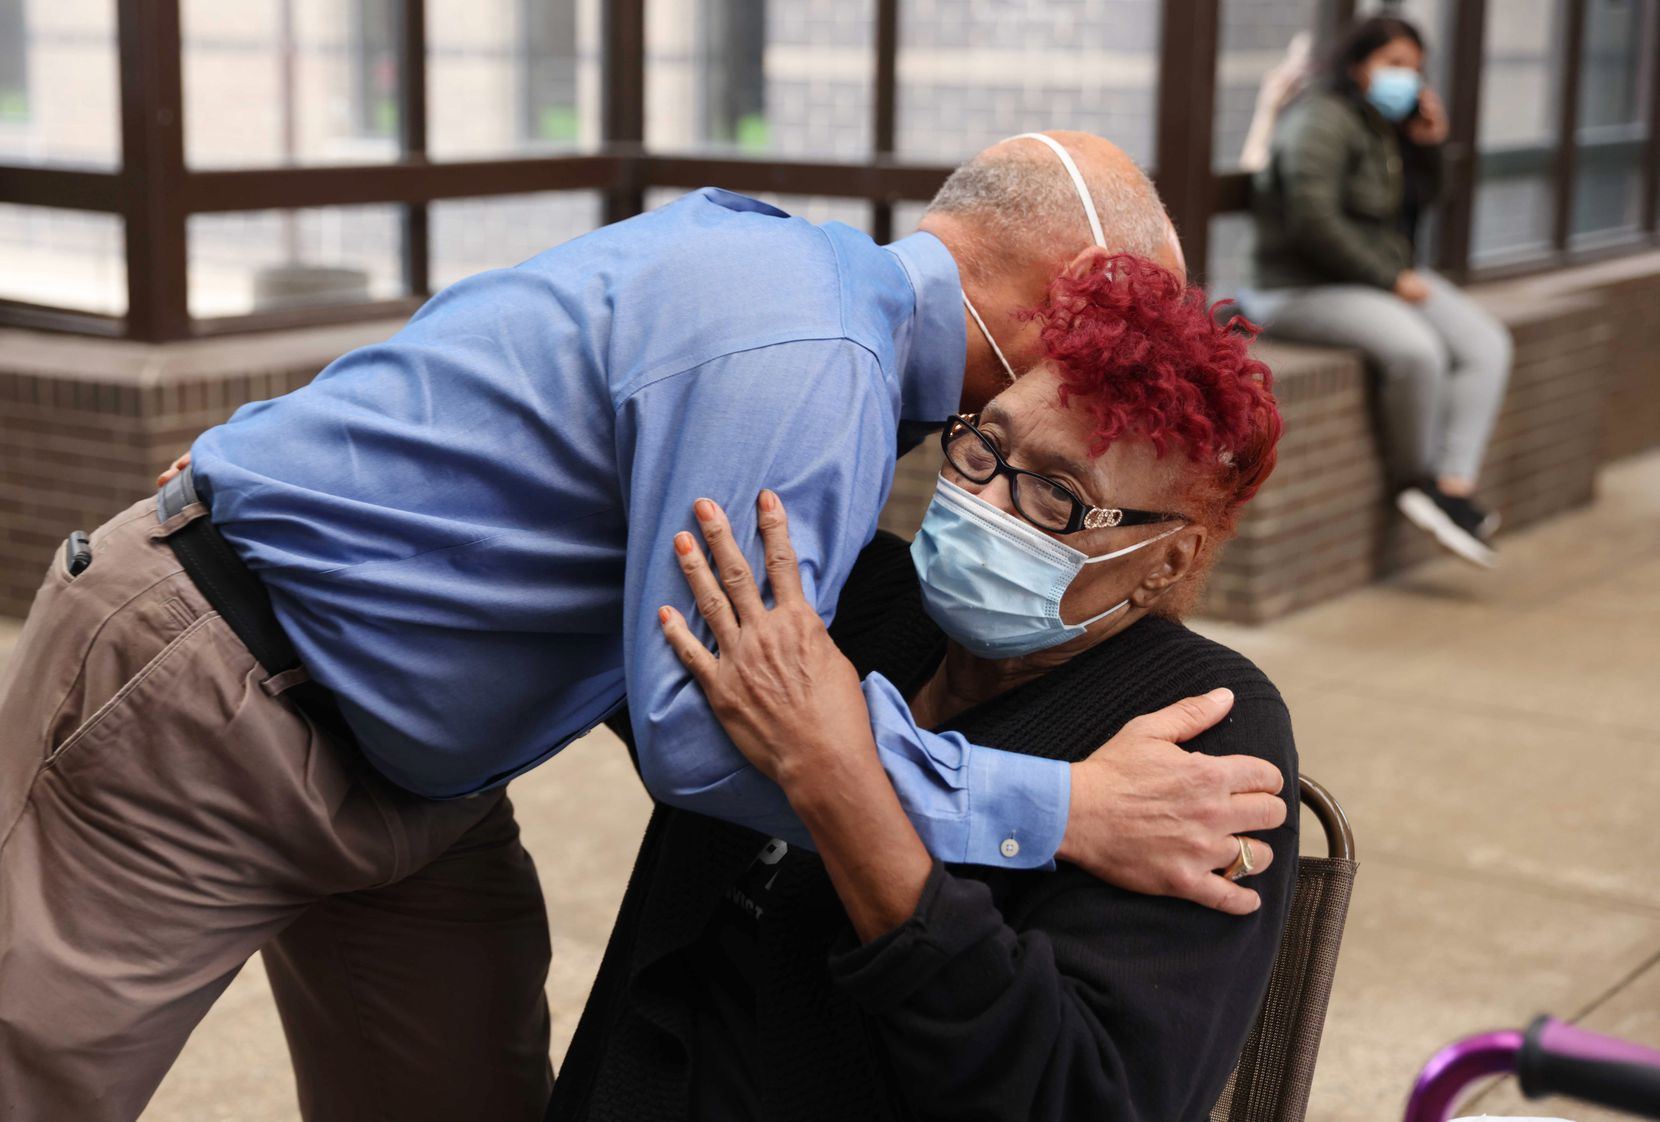 Dallas County District Attorney John Creuzot, left, hugs Lucille Spencer, mother of Ben Spencer, outside the Dallas County jail in Dallas as she waited for her son to be released on Friday, March 12, 2021.